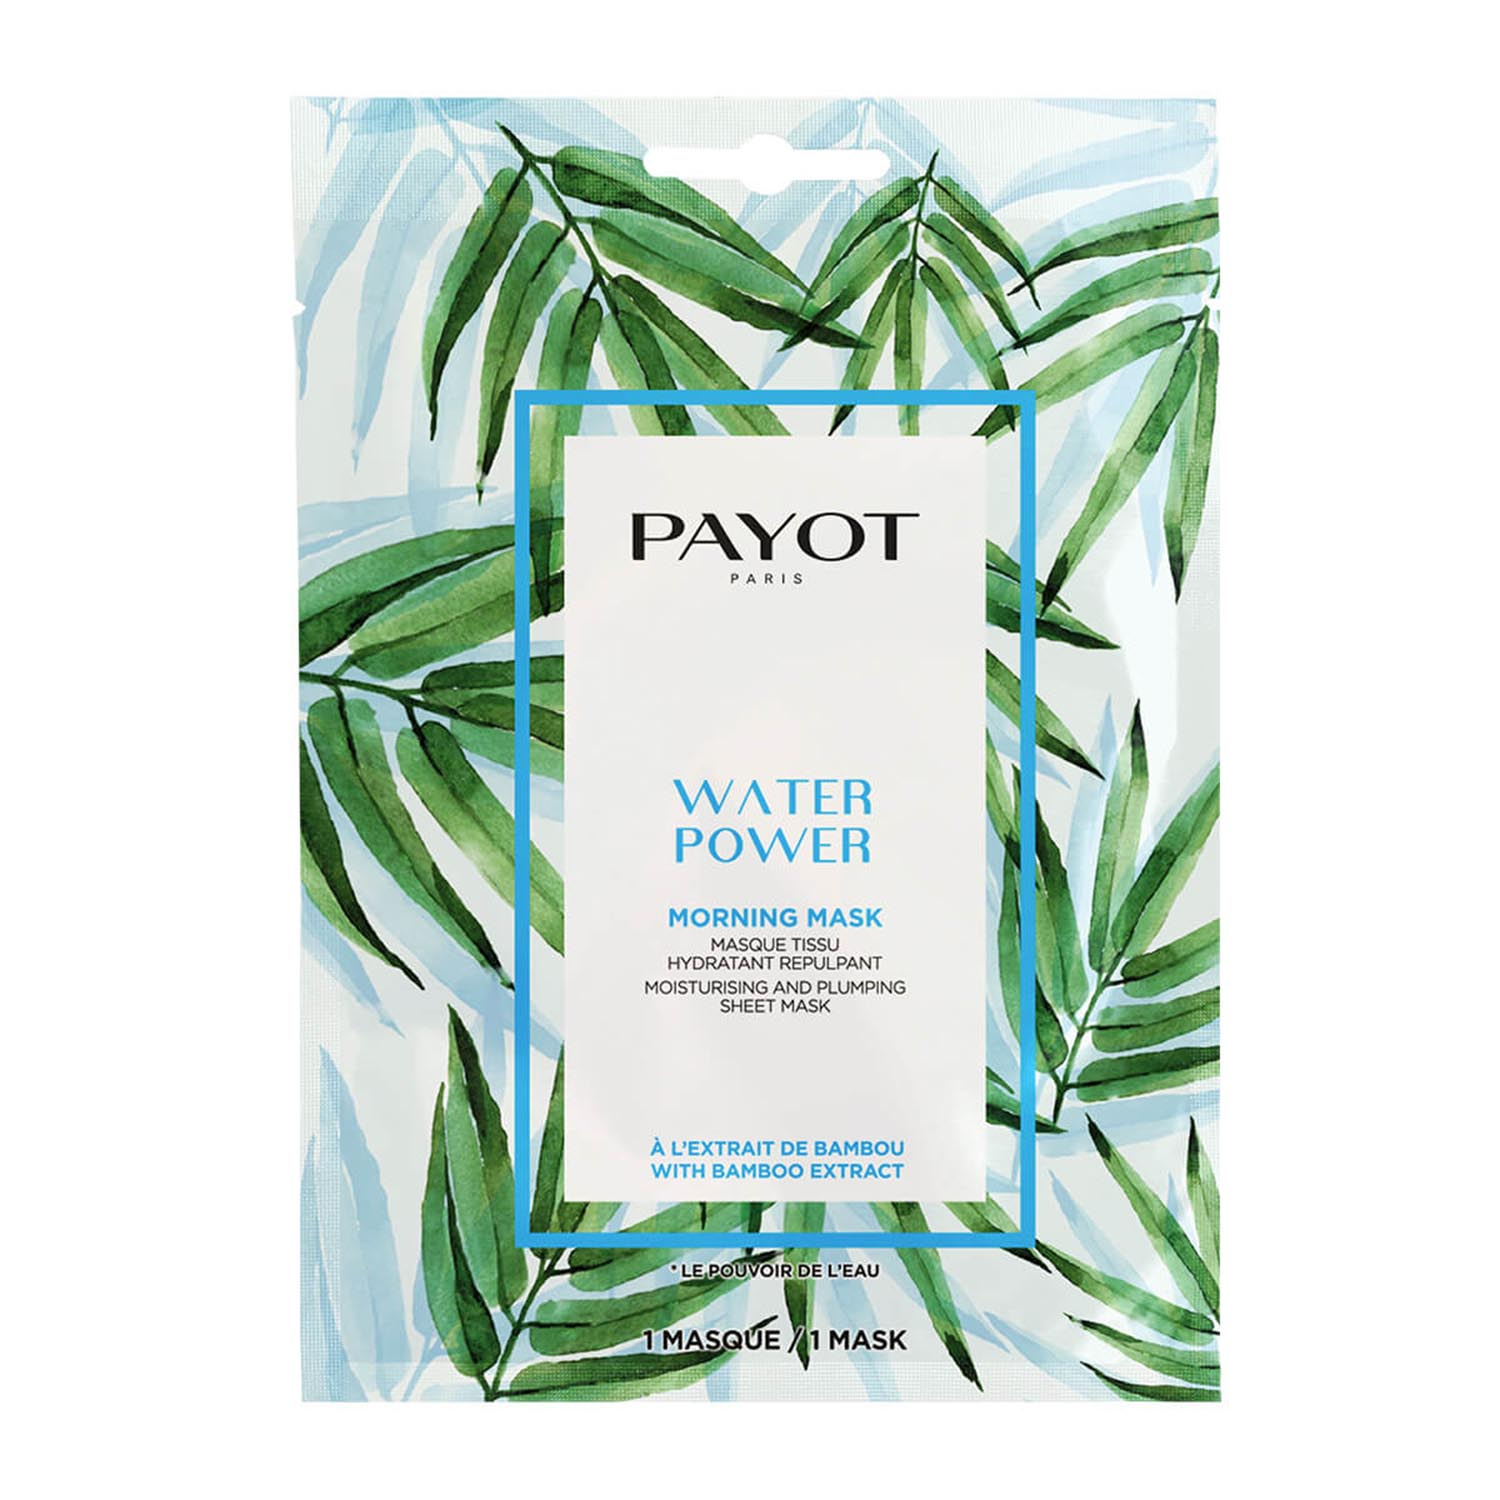 Payot water power morning mask 15ud